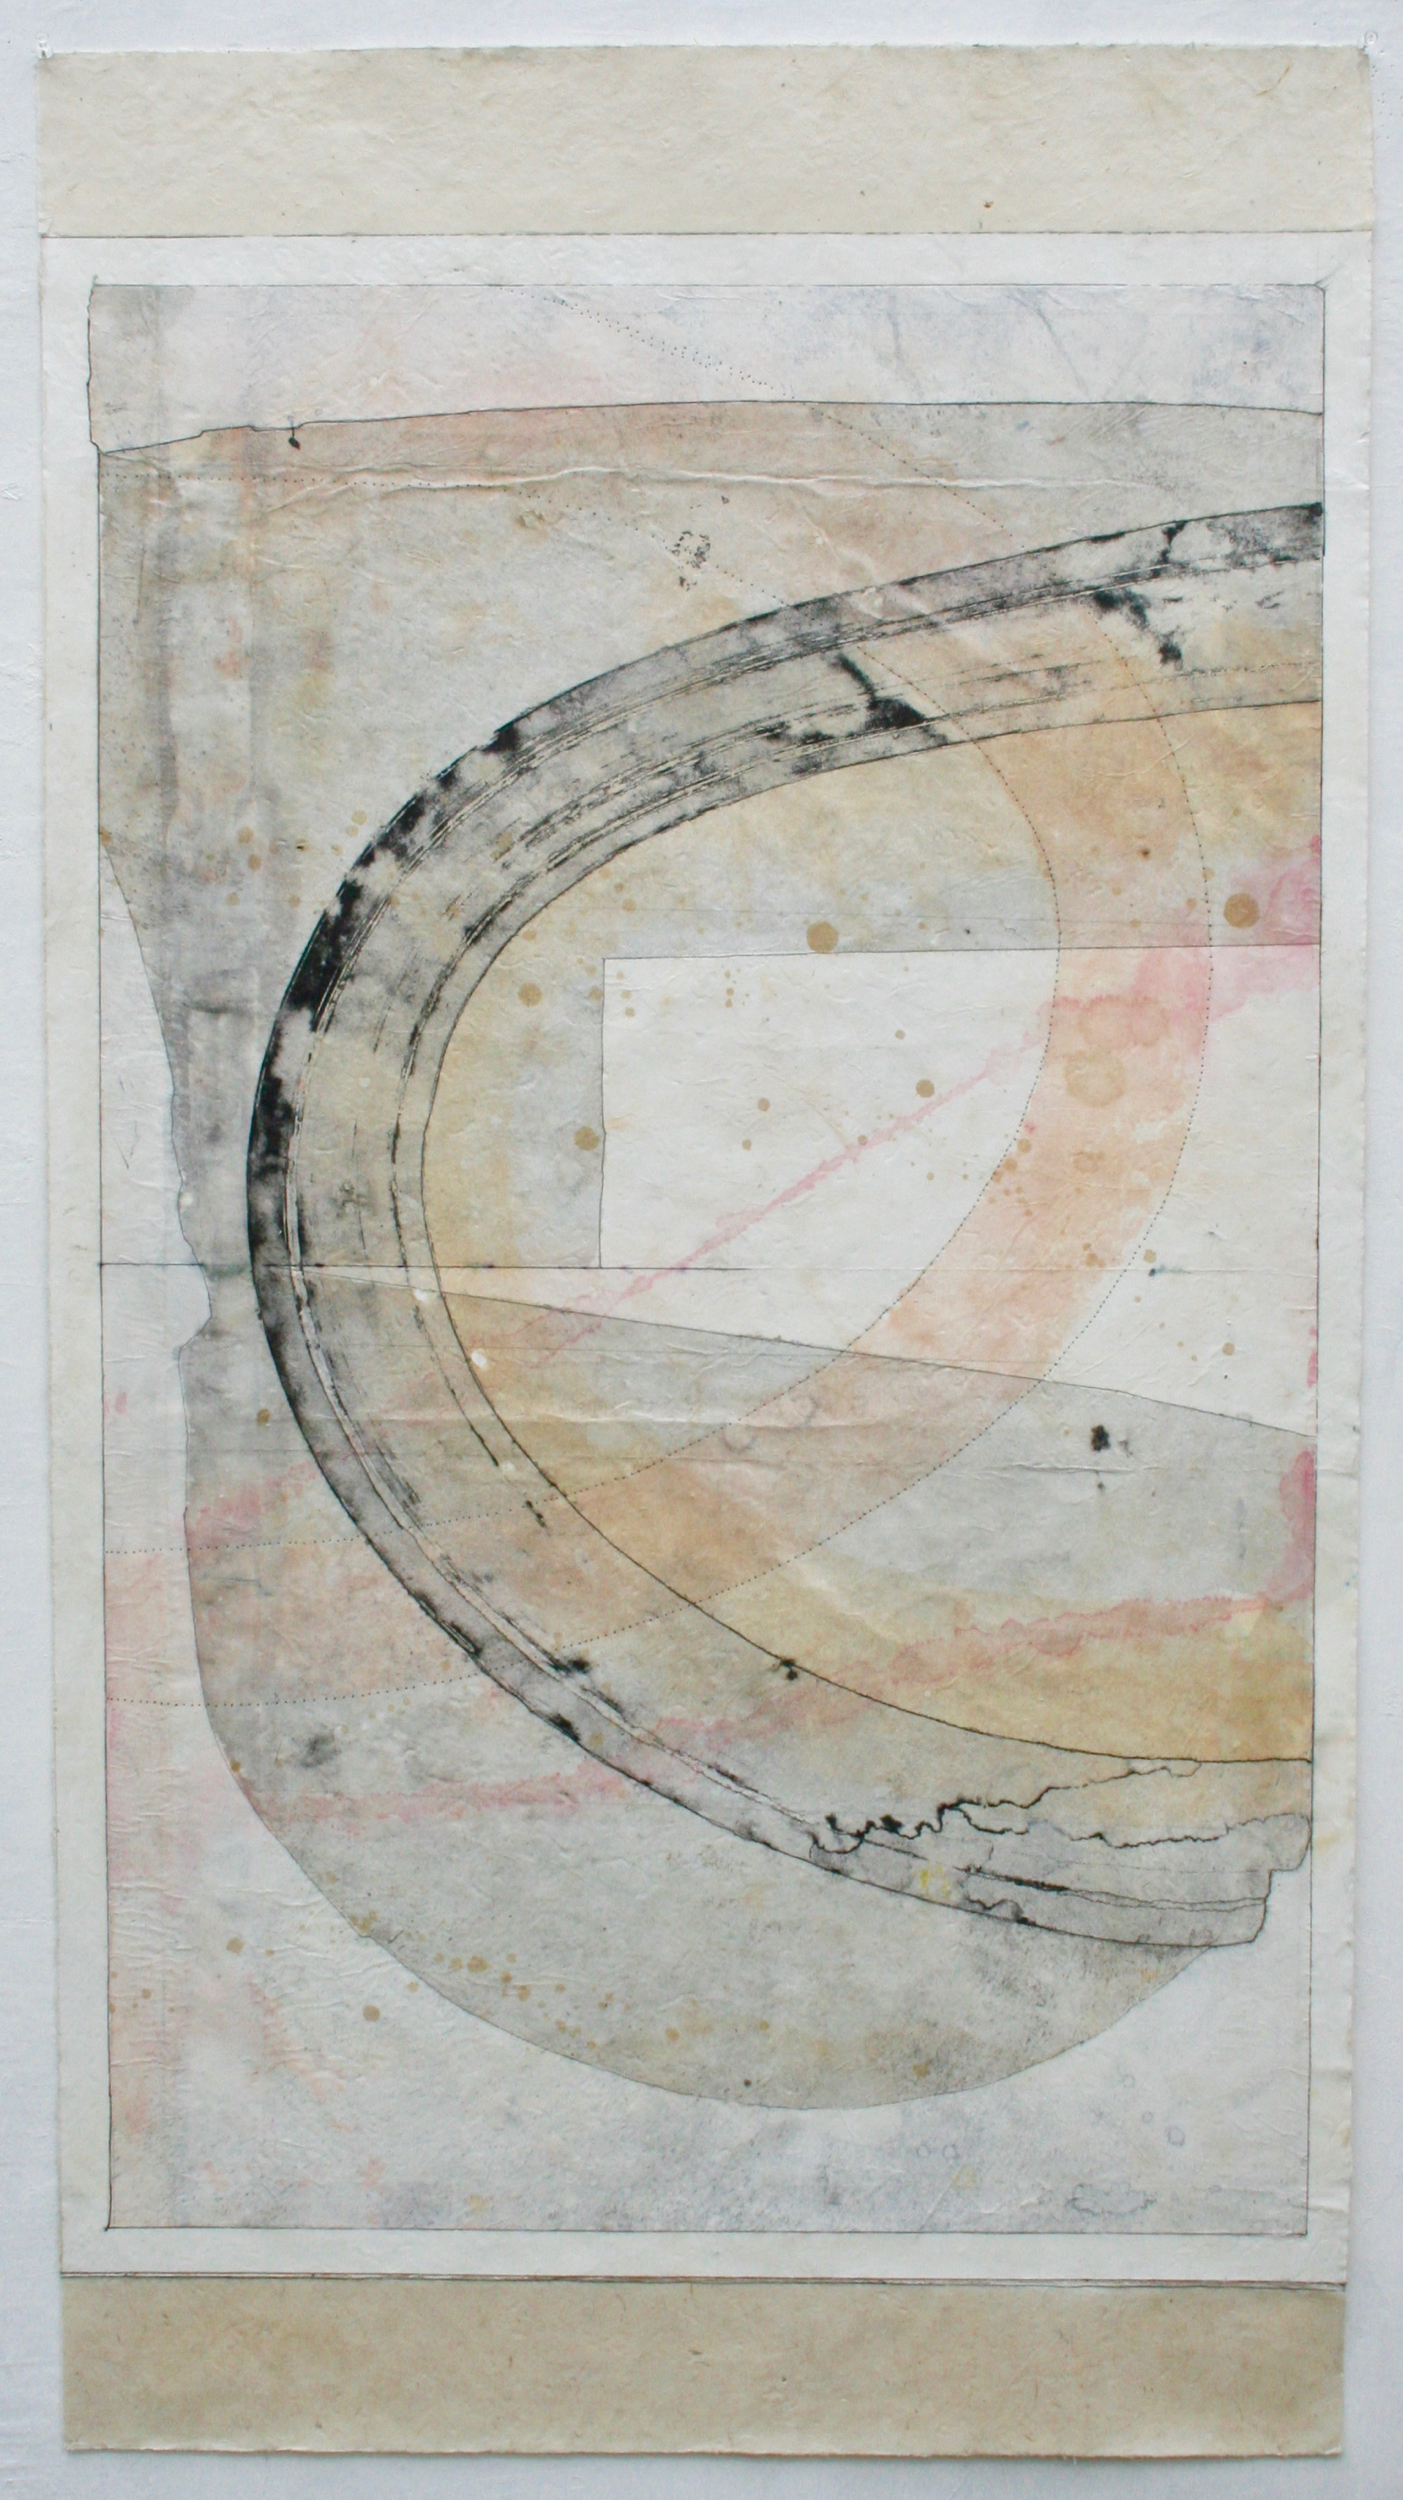 synchrony  mixed media on Tibetan paper  48 x 25.5  sold  .  .  .  .